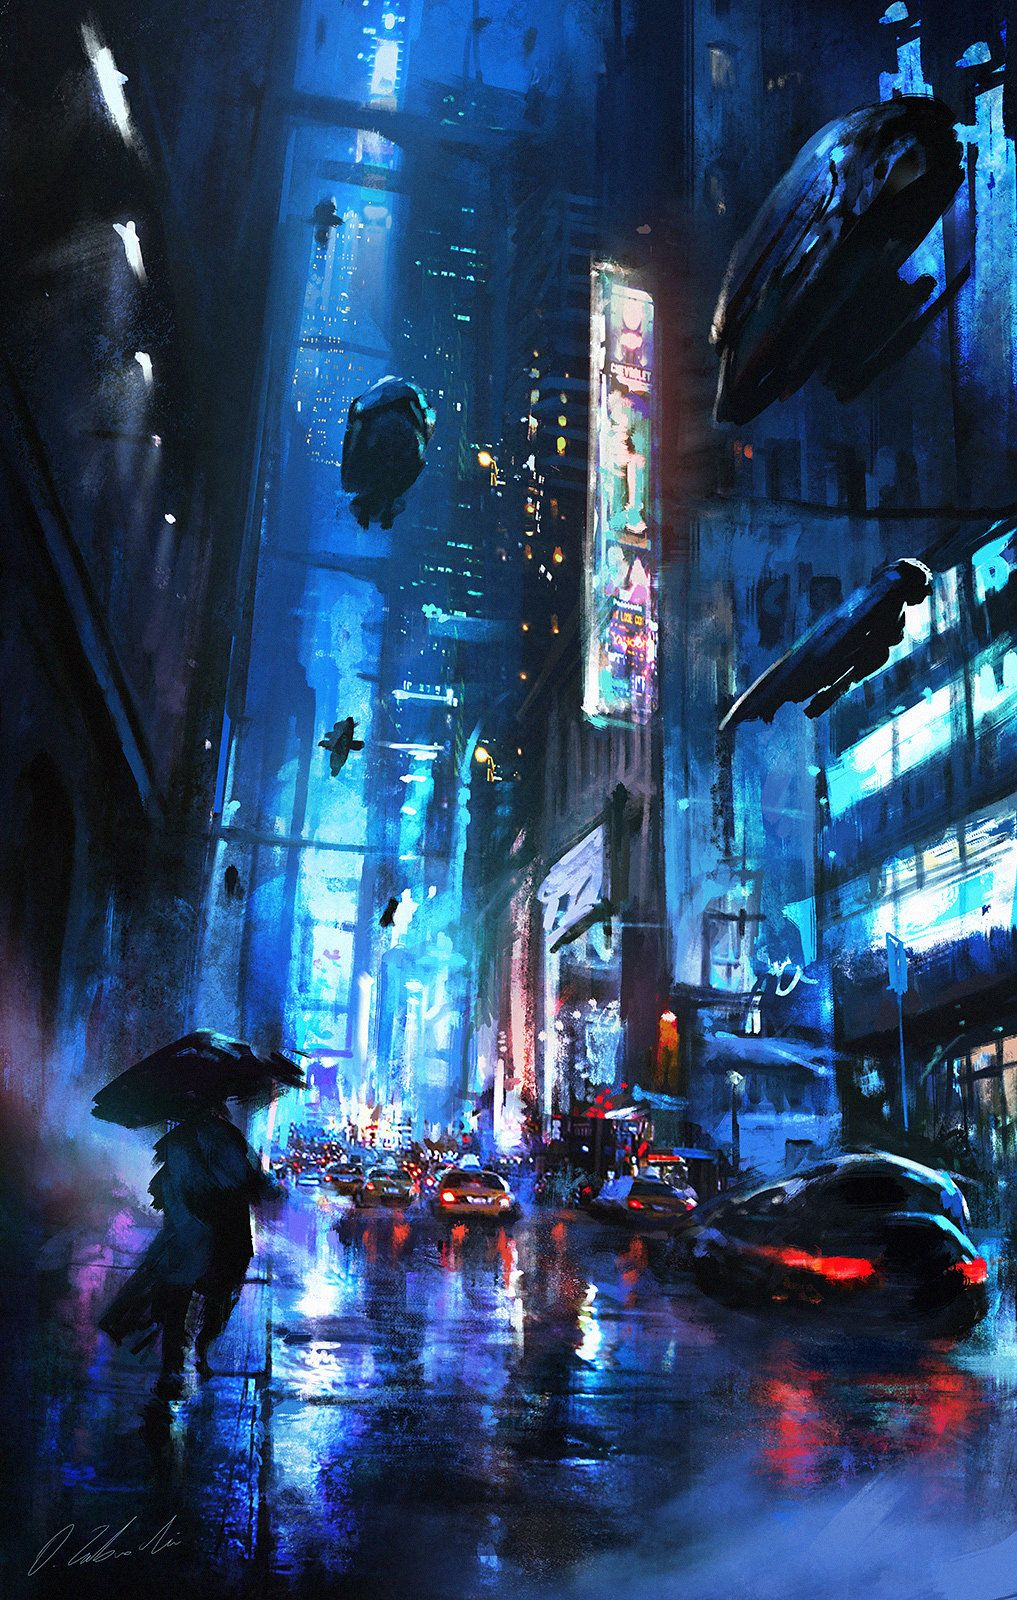 Pin By Brownie On Anime Art Fandom Sci Fi City Cyberpunk Art